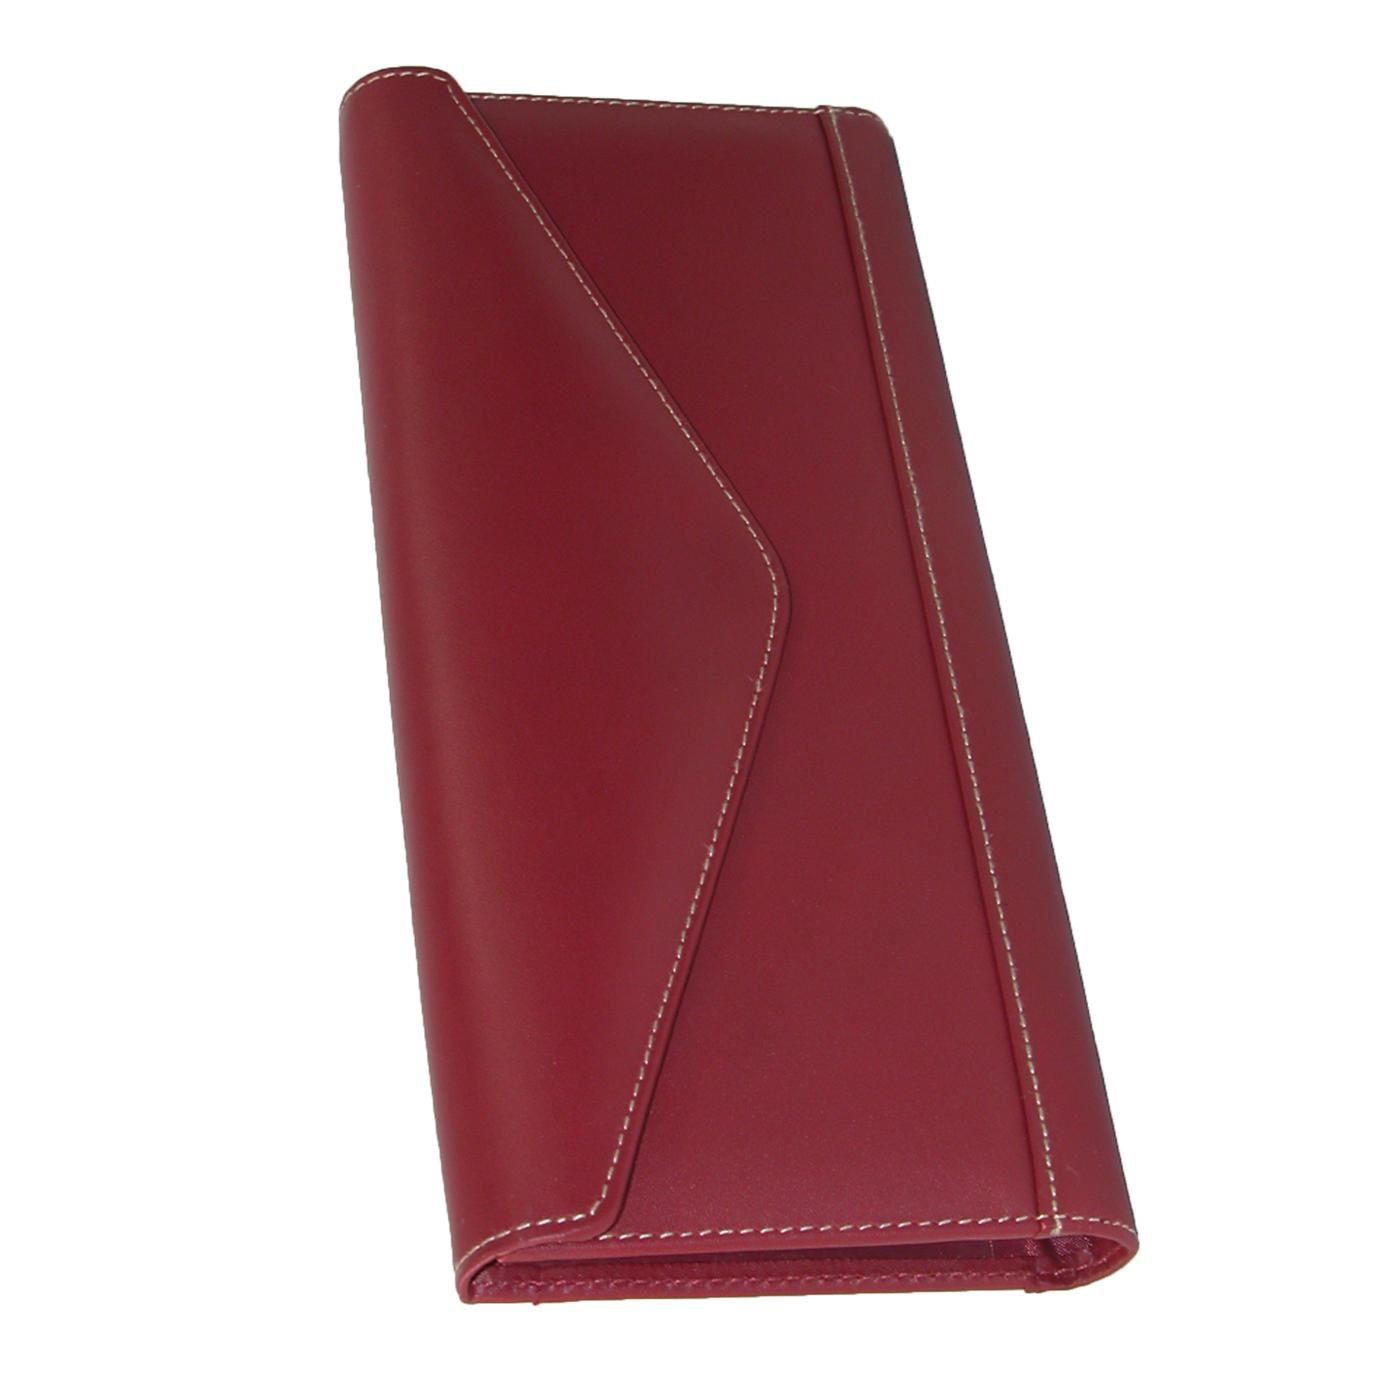 Genuine Leather Envelope Business Card File by Buxton. 64 card slots ...